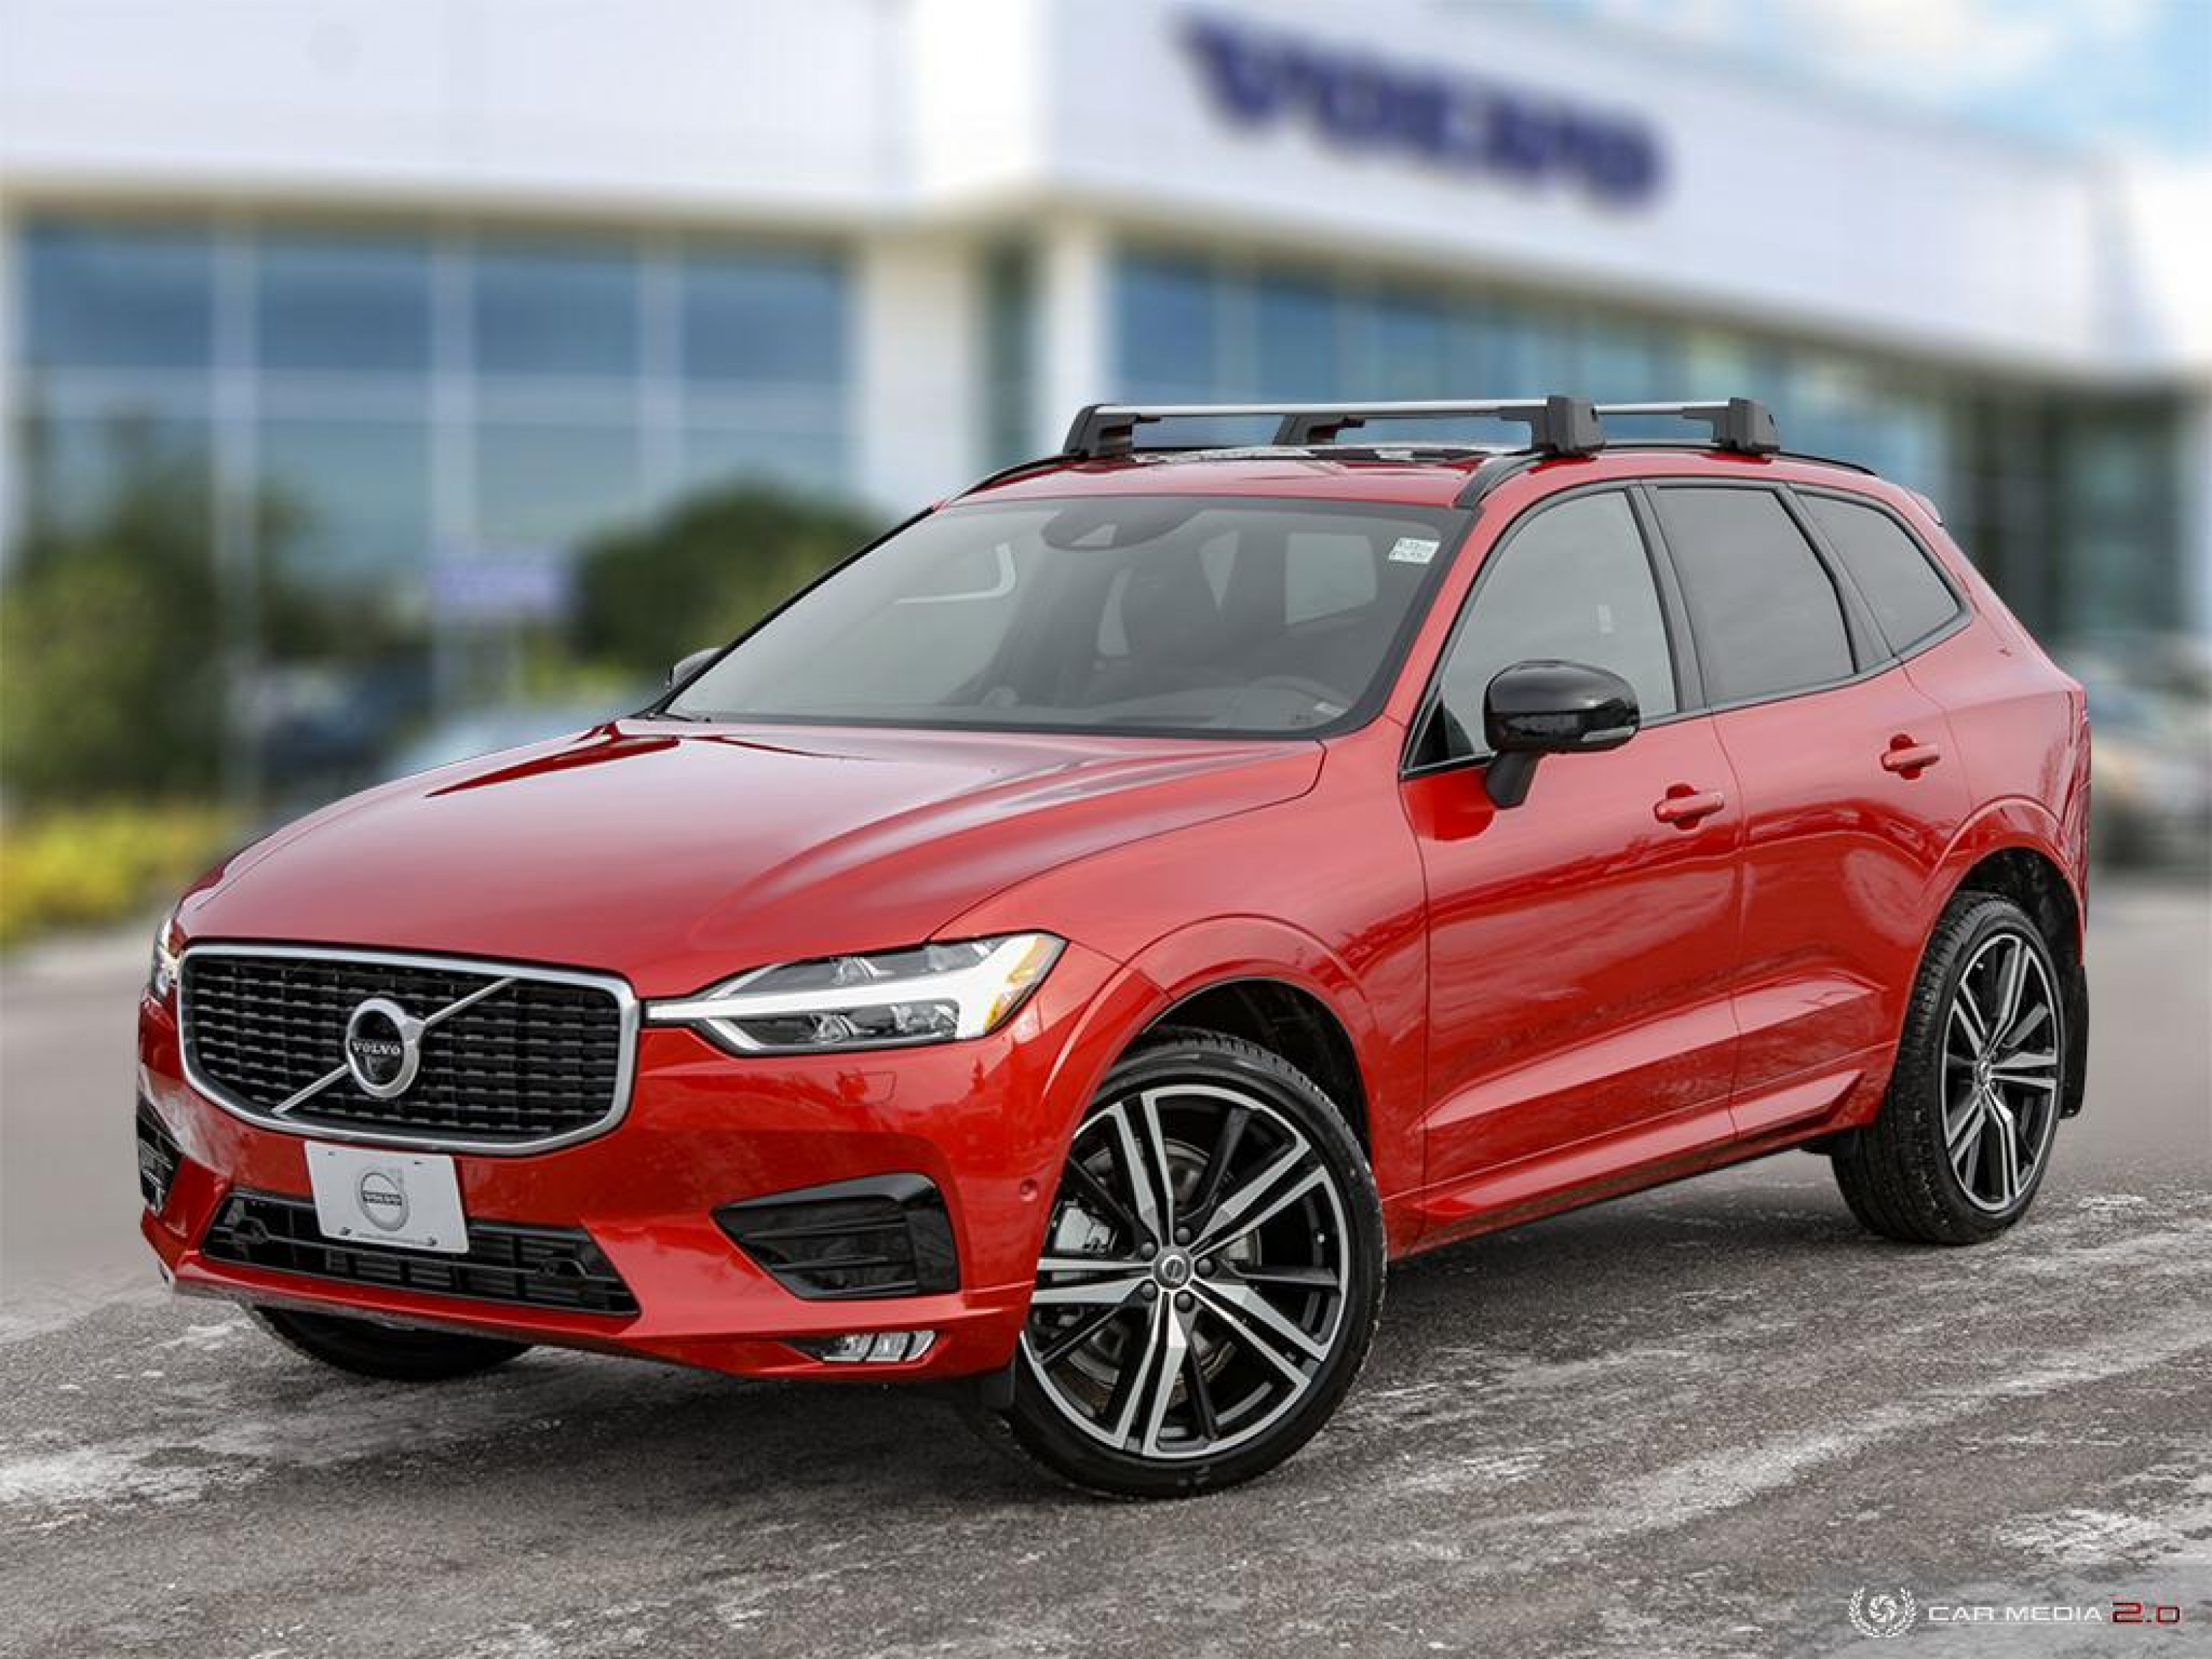 New 2020 Volvo XC60 R-Design | Class-Leading Safety